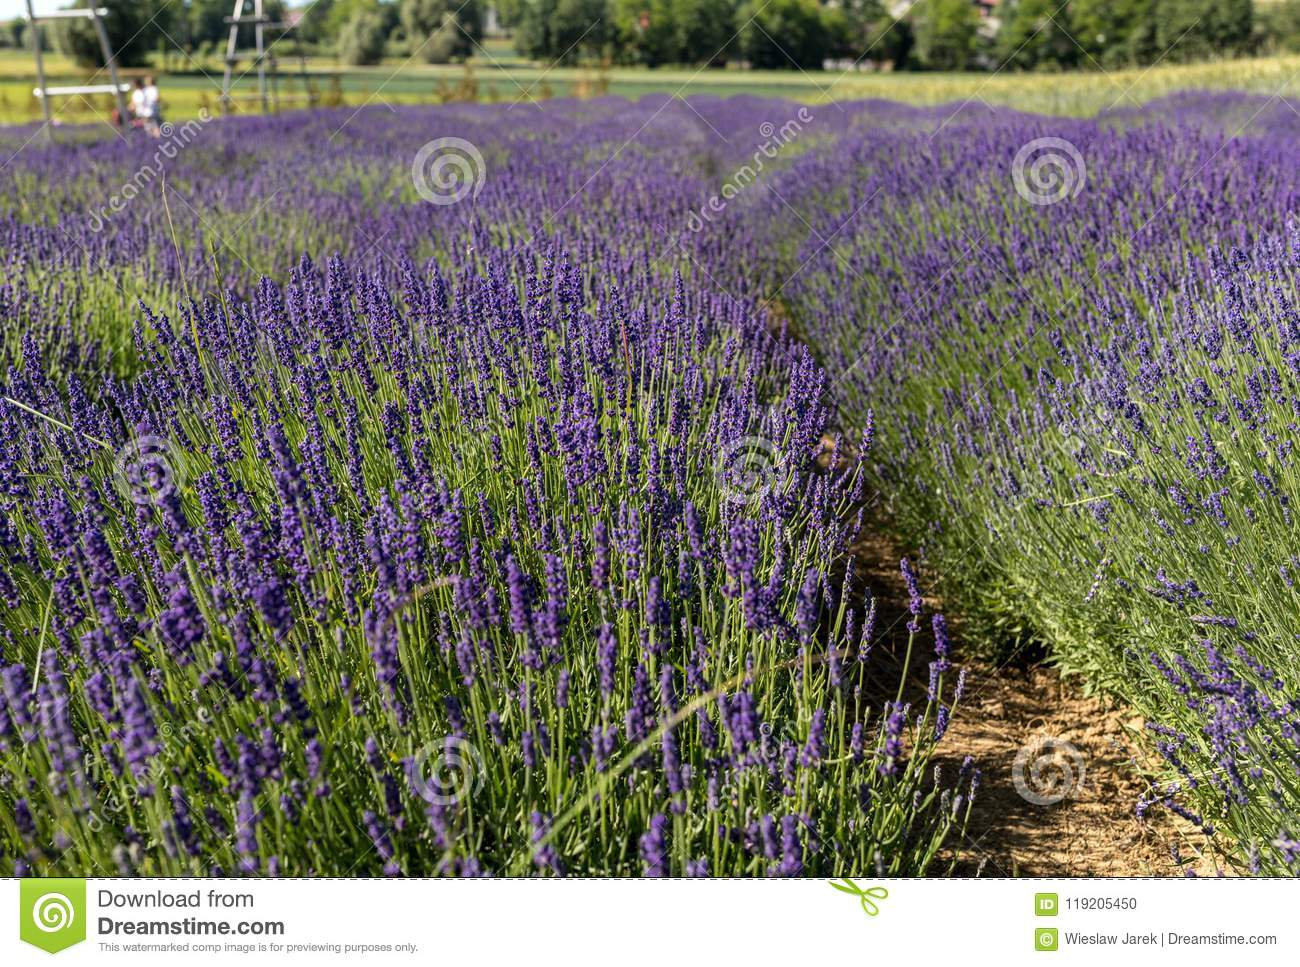 Garden full of lavender in Ostrów 40 km from Krakow. The smell and color of lavender allows visitors to feel like in Provence